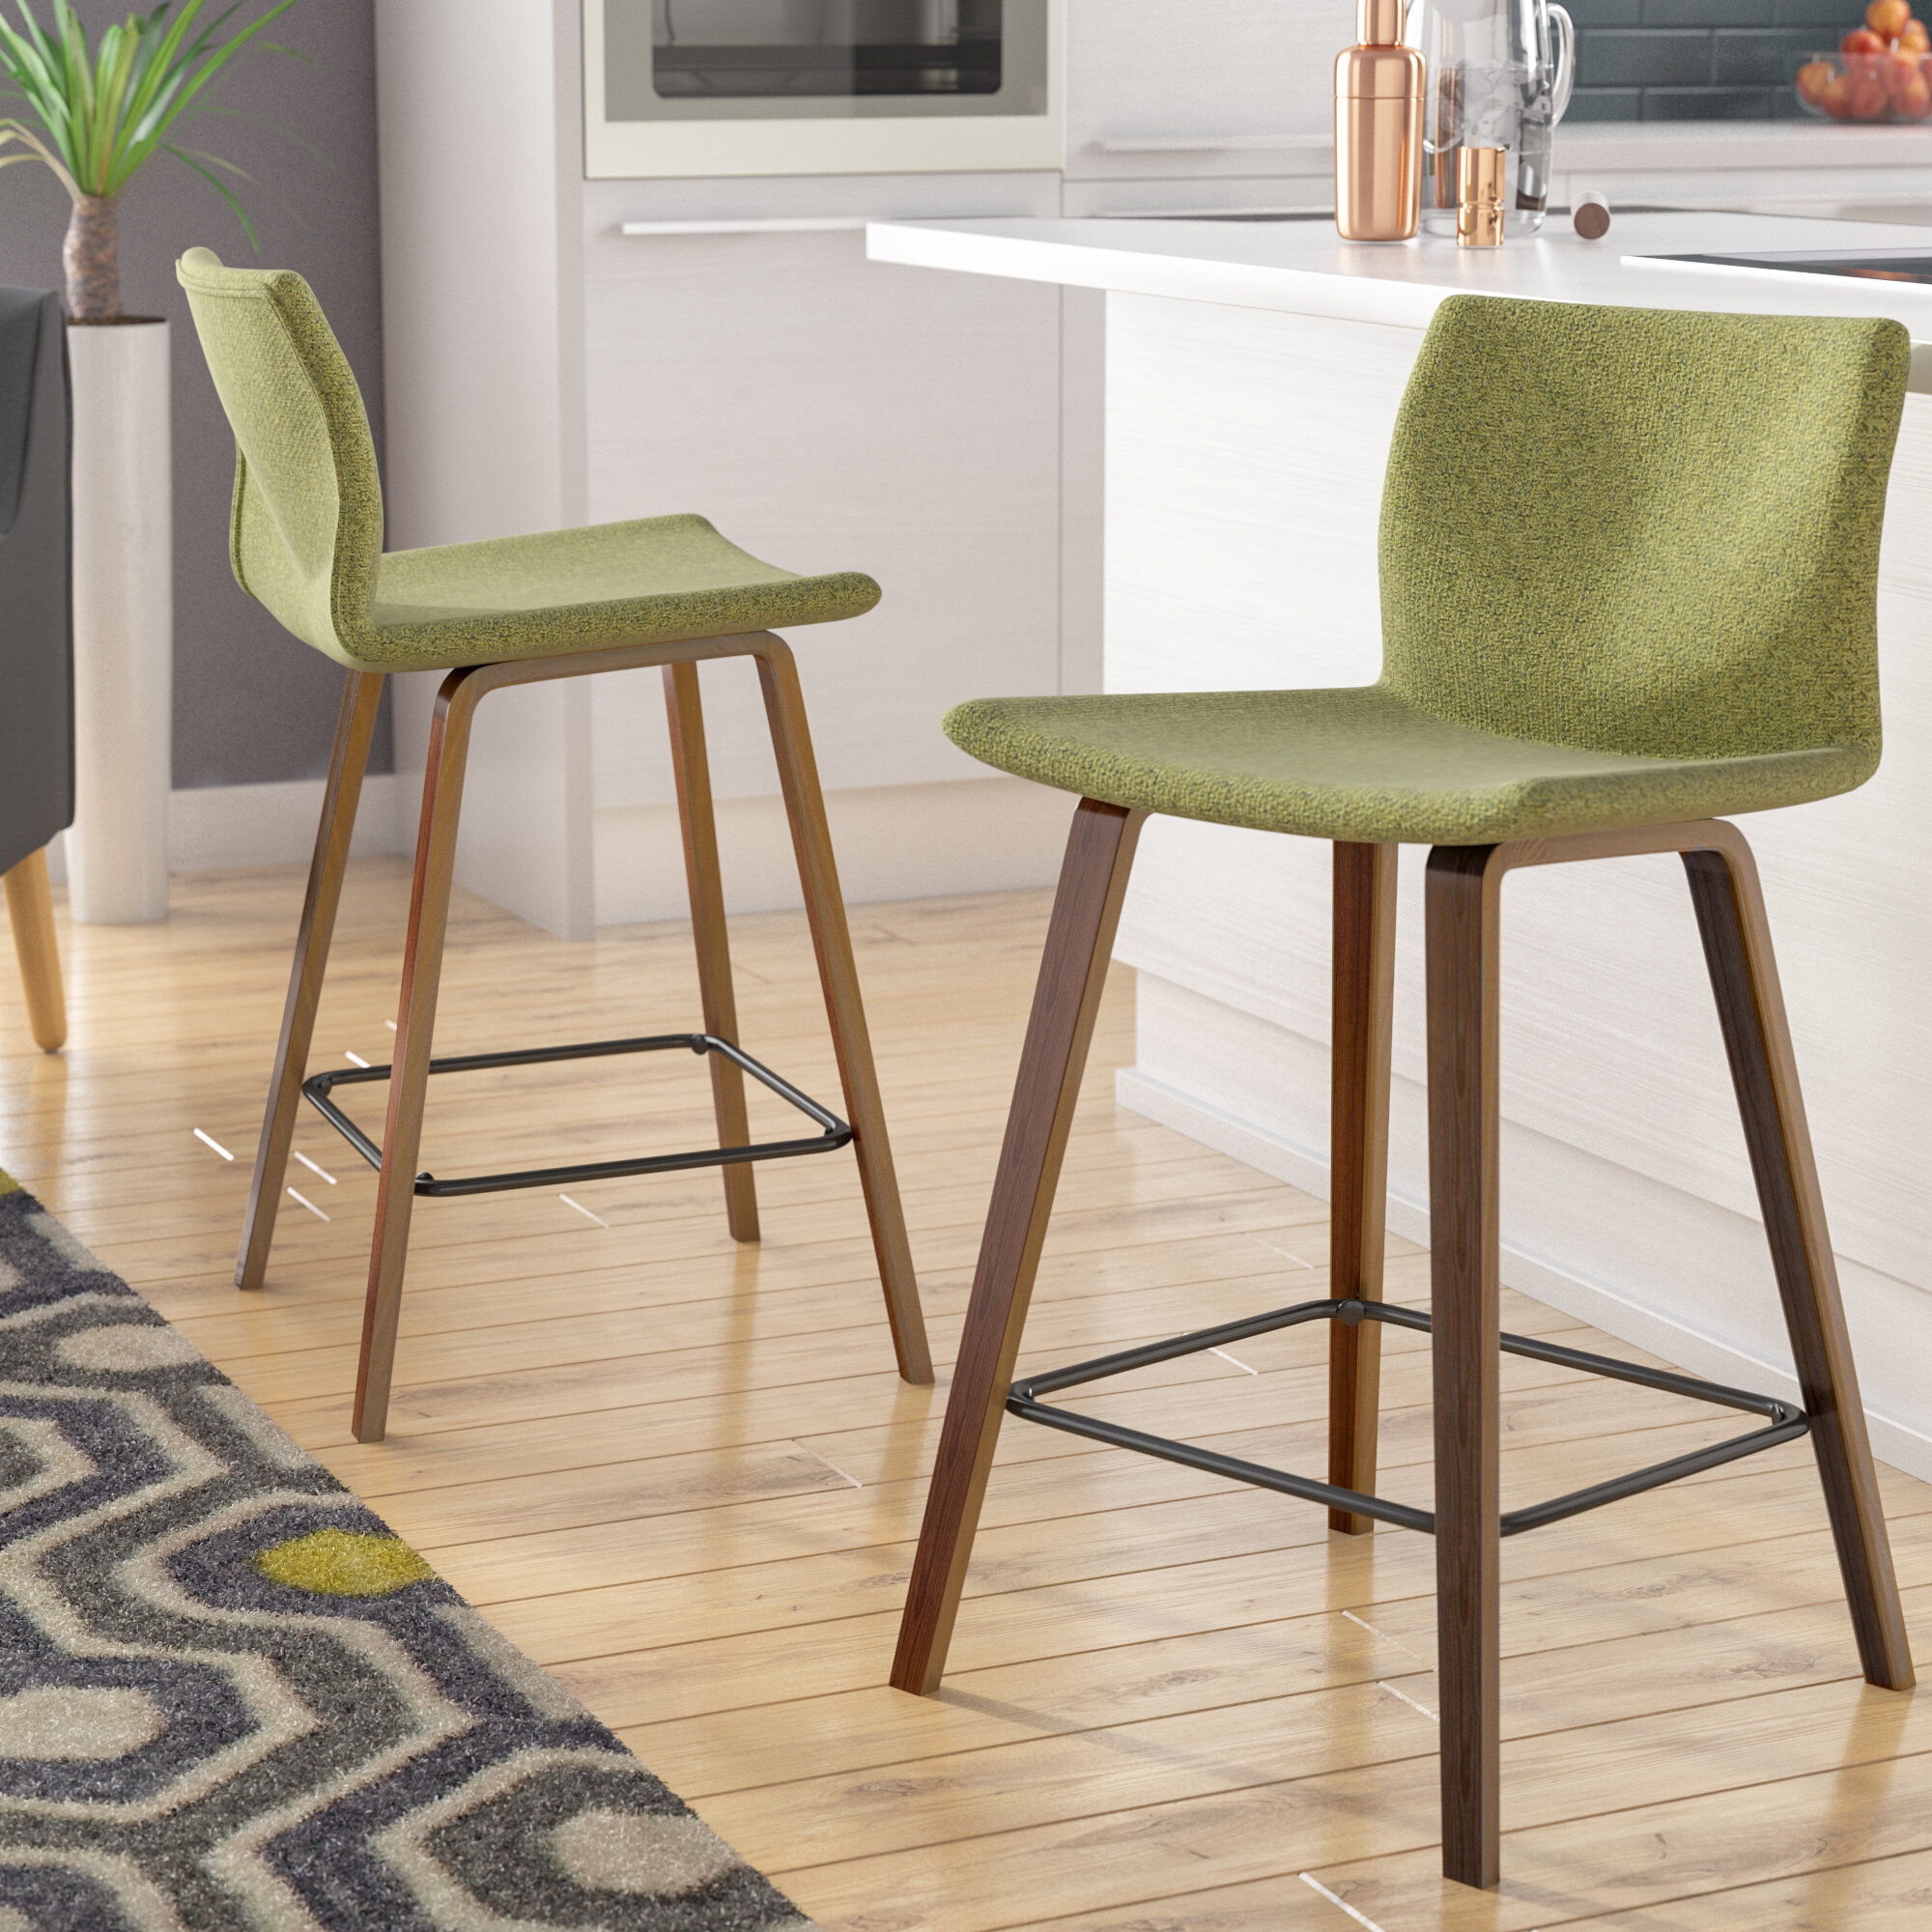 Corrigan Studio Colby 25 Bar Stool Reviews Wayfair